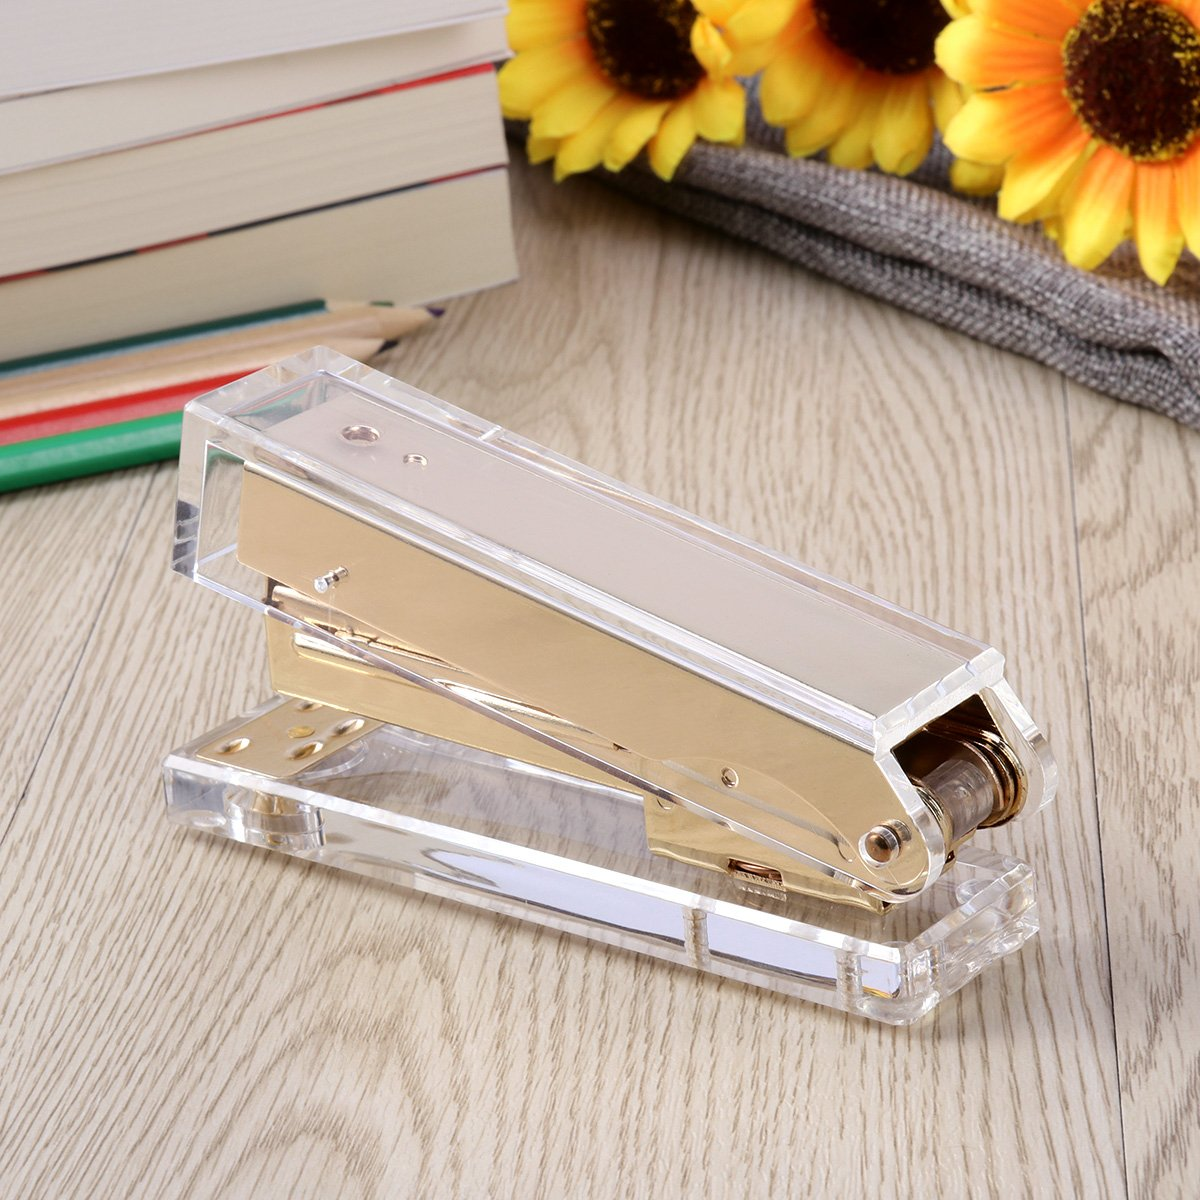 TOYMYTOY Acrylic Clear Desktop Staplers,Classic Desk Staplers for Office, School Use (Gold) by TOYMYTOY (Image #3)